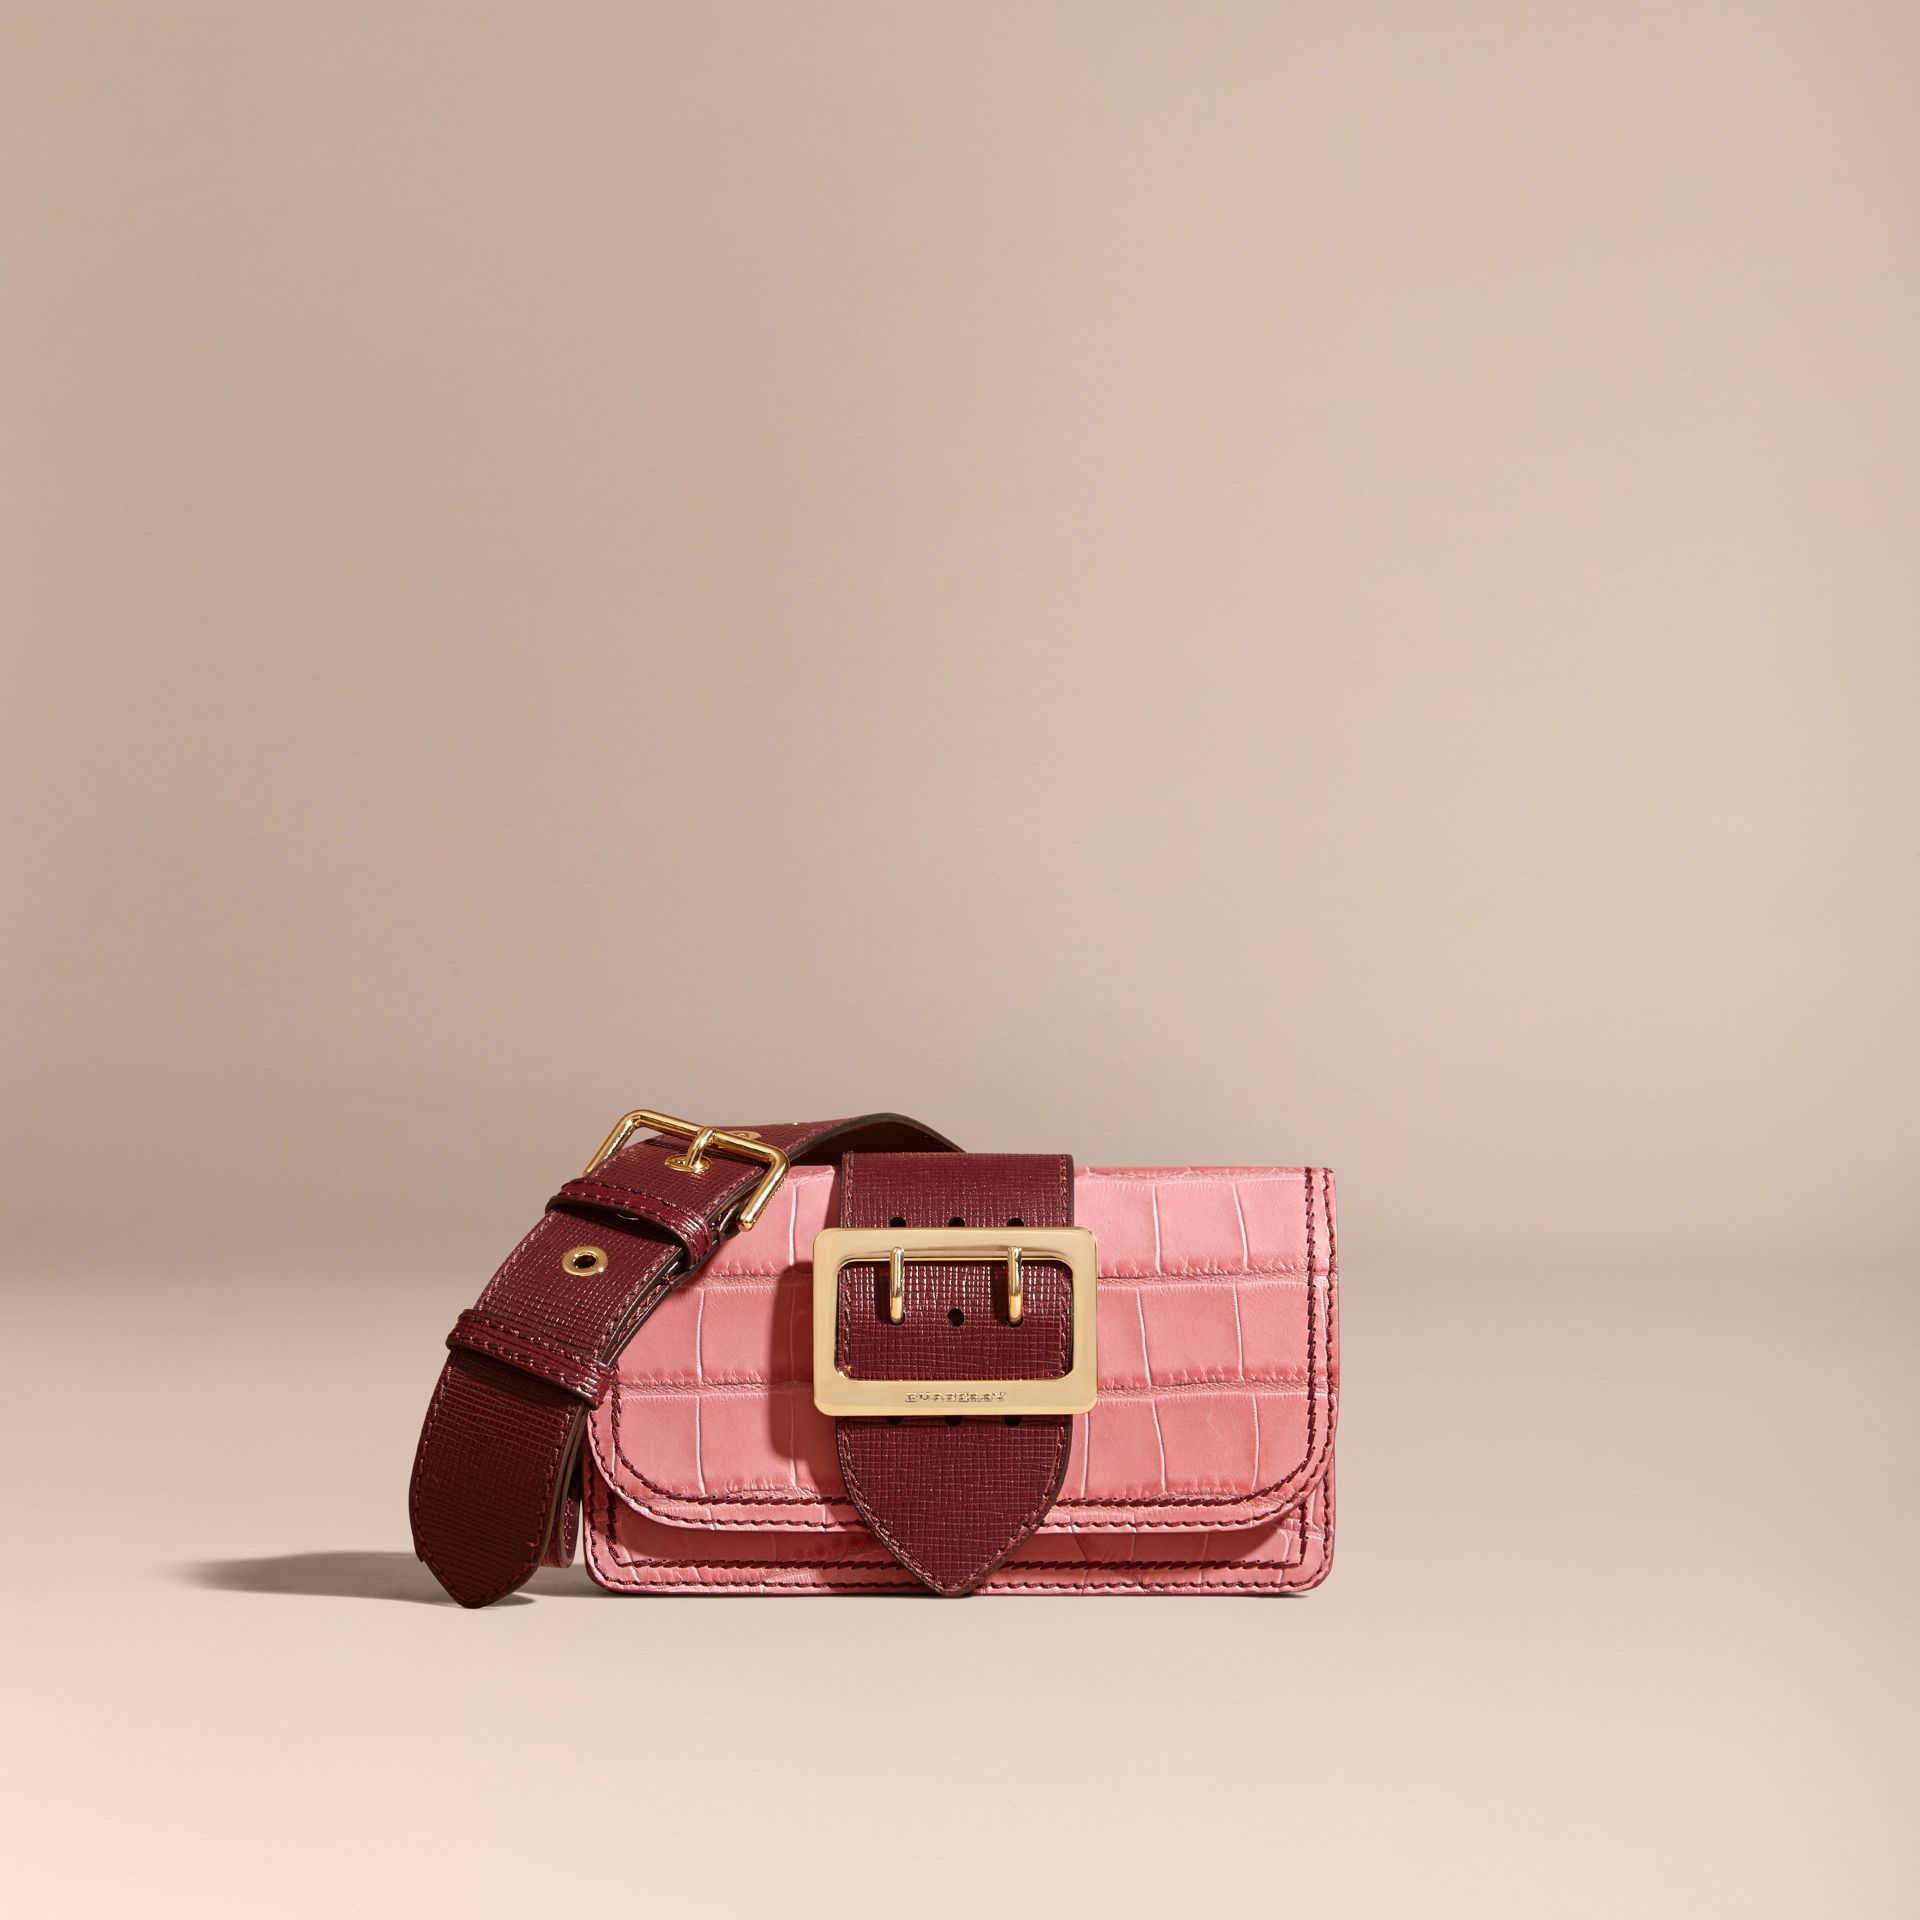 The Small Buckle Bag in Alligator and Leather in Dusky Pink/ Burgundy - Women | Burberry - gallery image 9